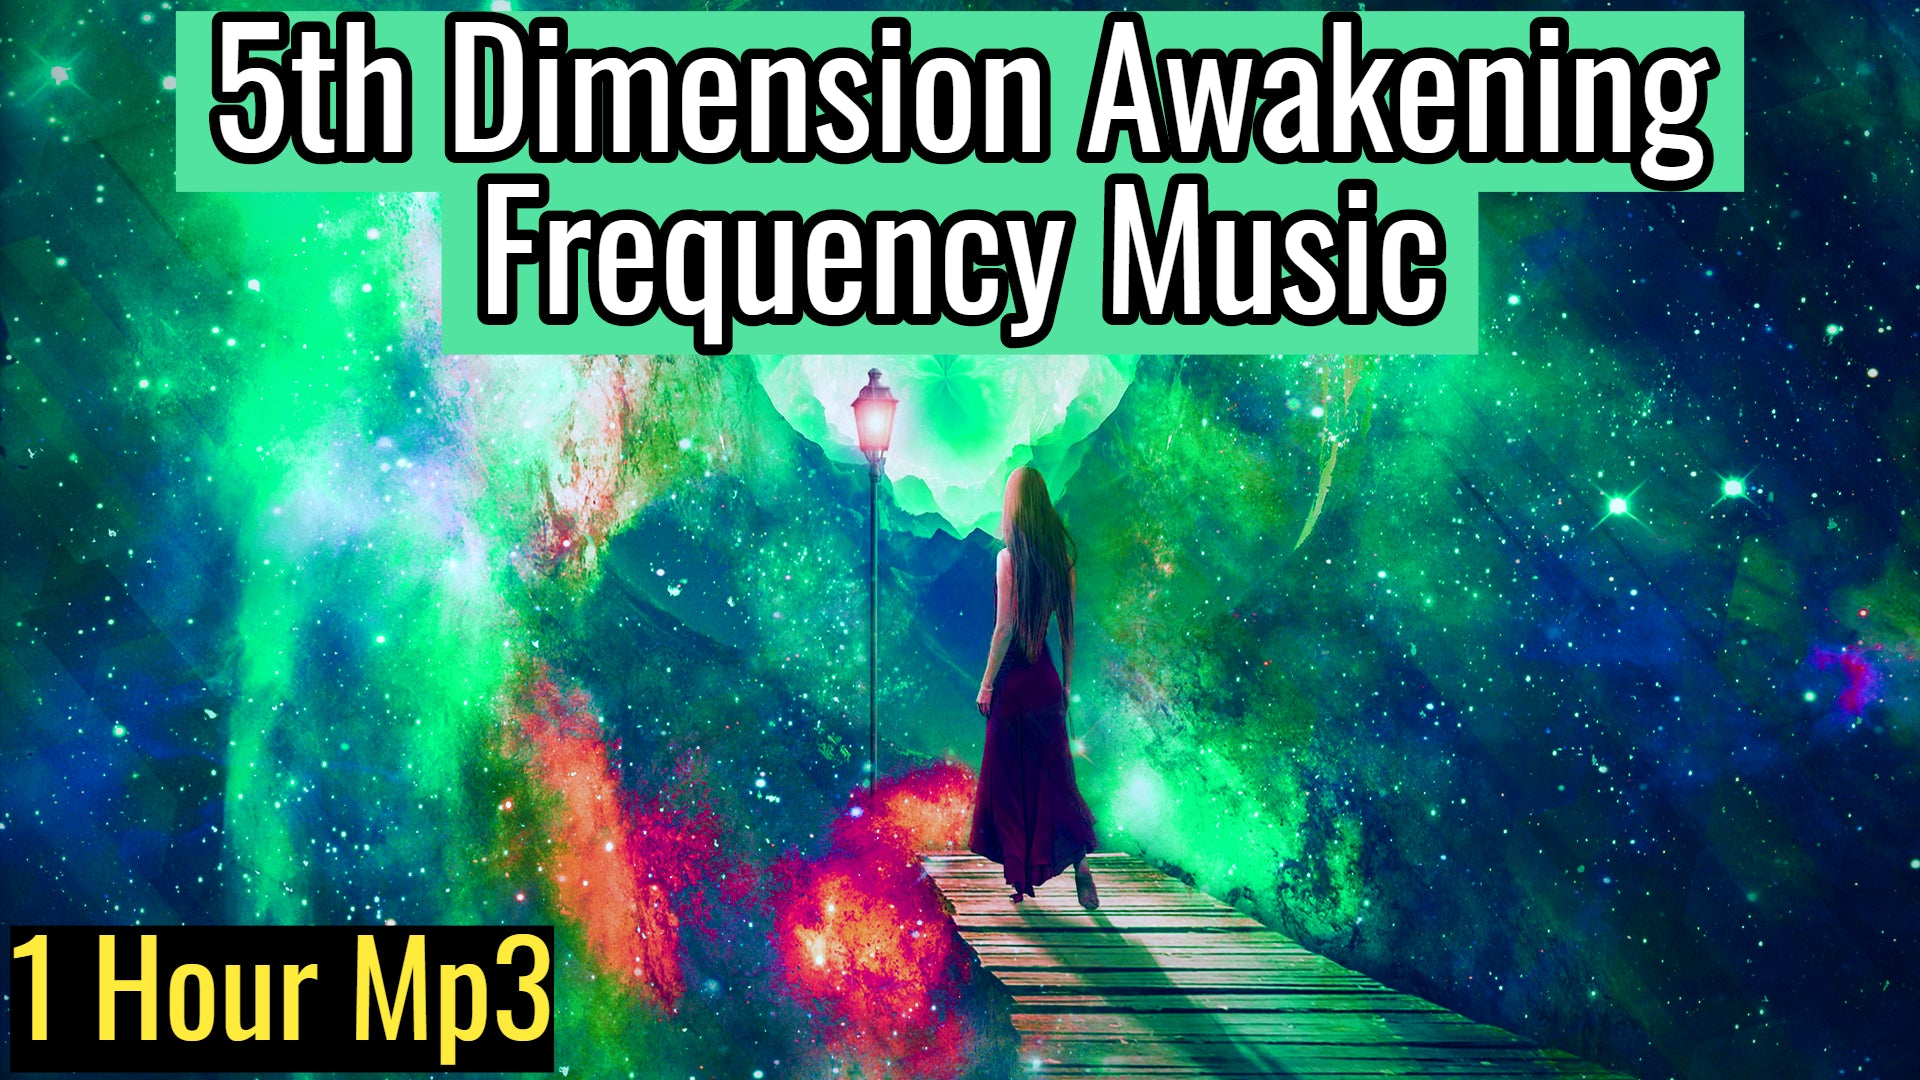 5th Dimension Awakening Frequency Music (Meditation Music for Awakening) 1 Hour track